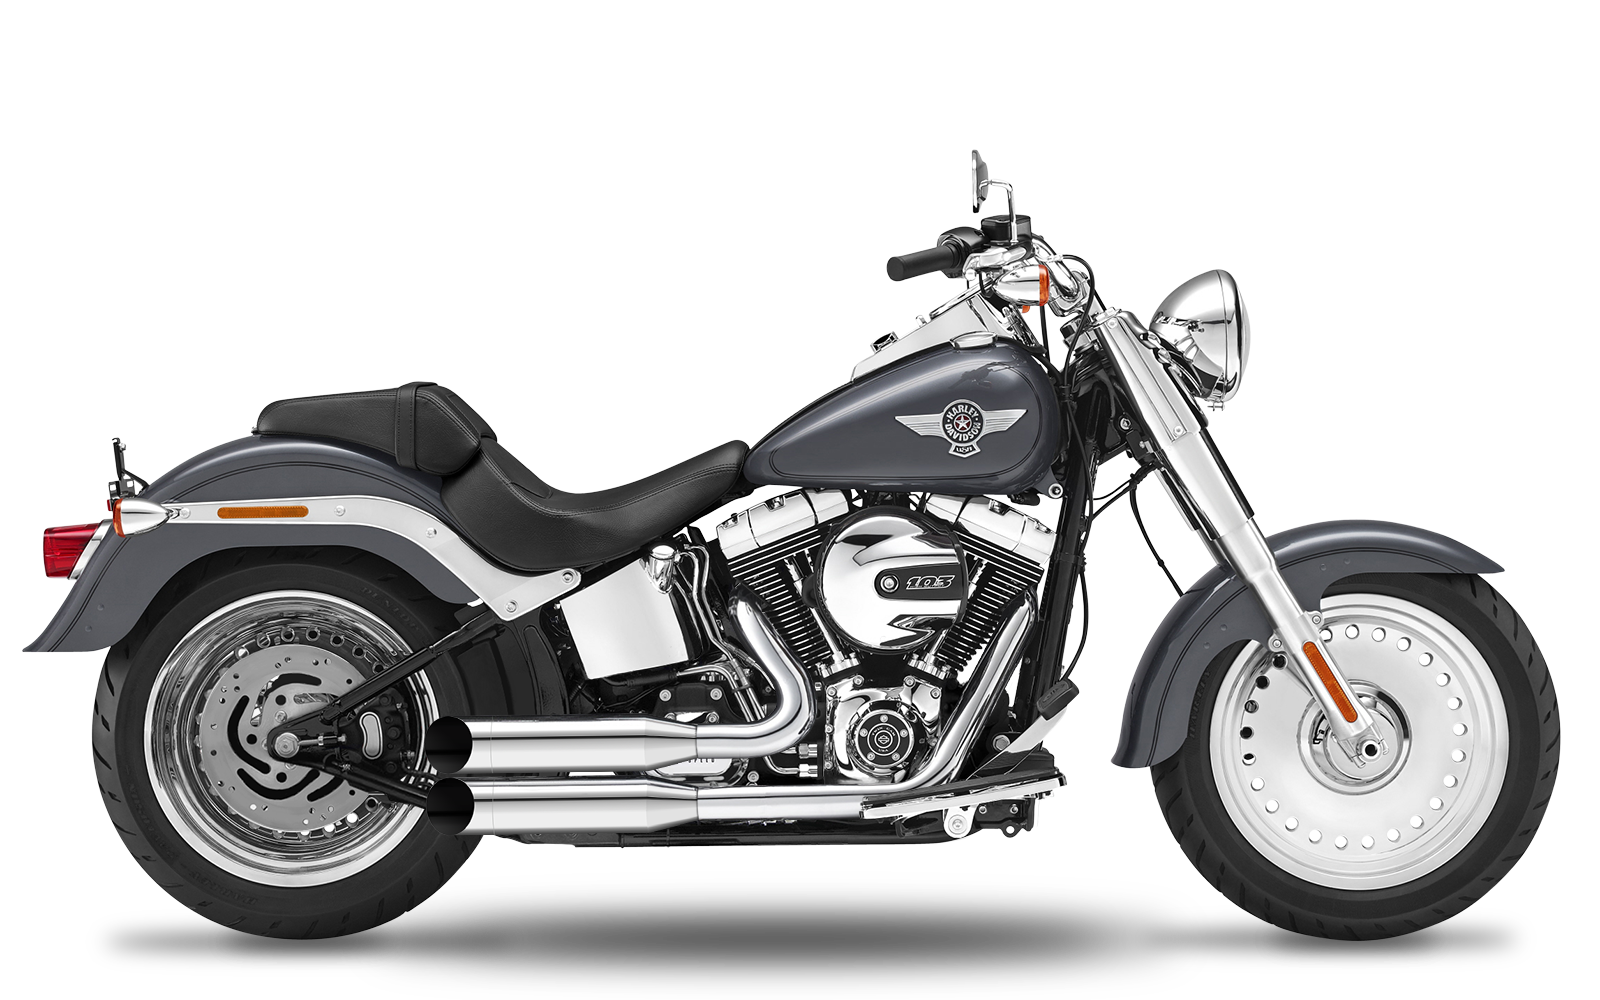 Softail - Fat Boy - TC103 - 2012-2016 - Complete systems